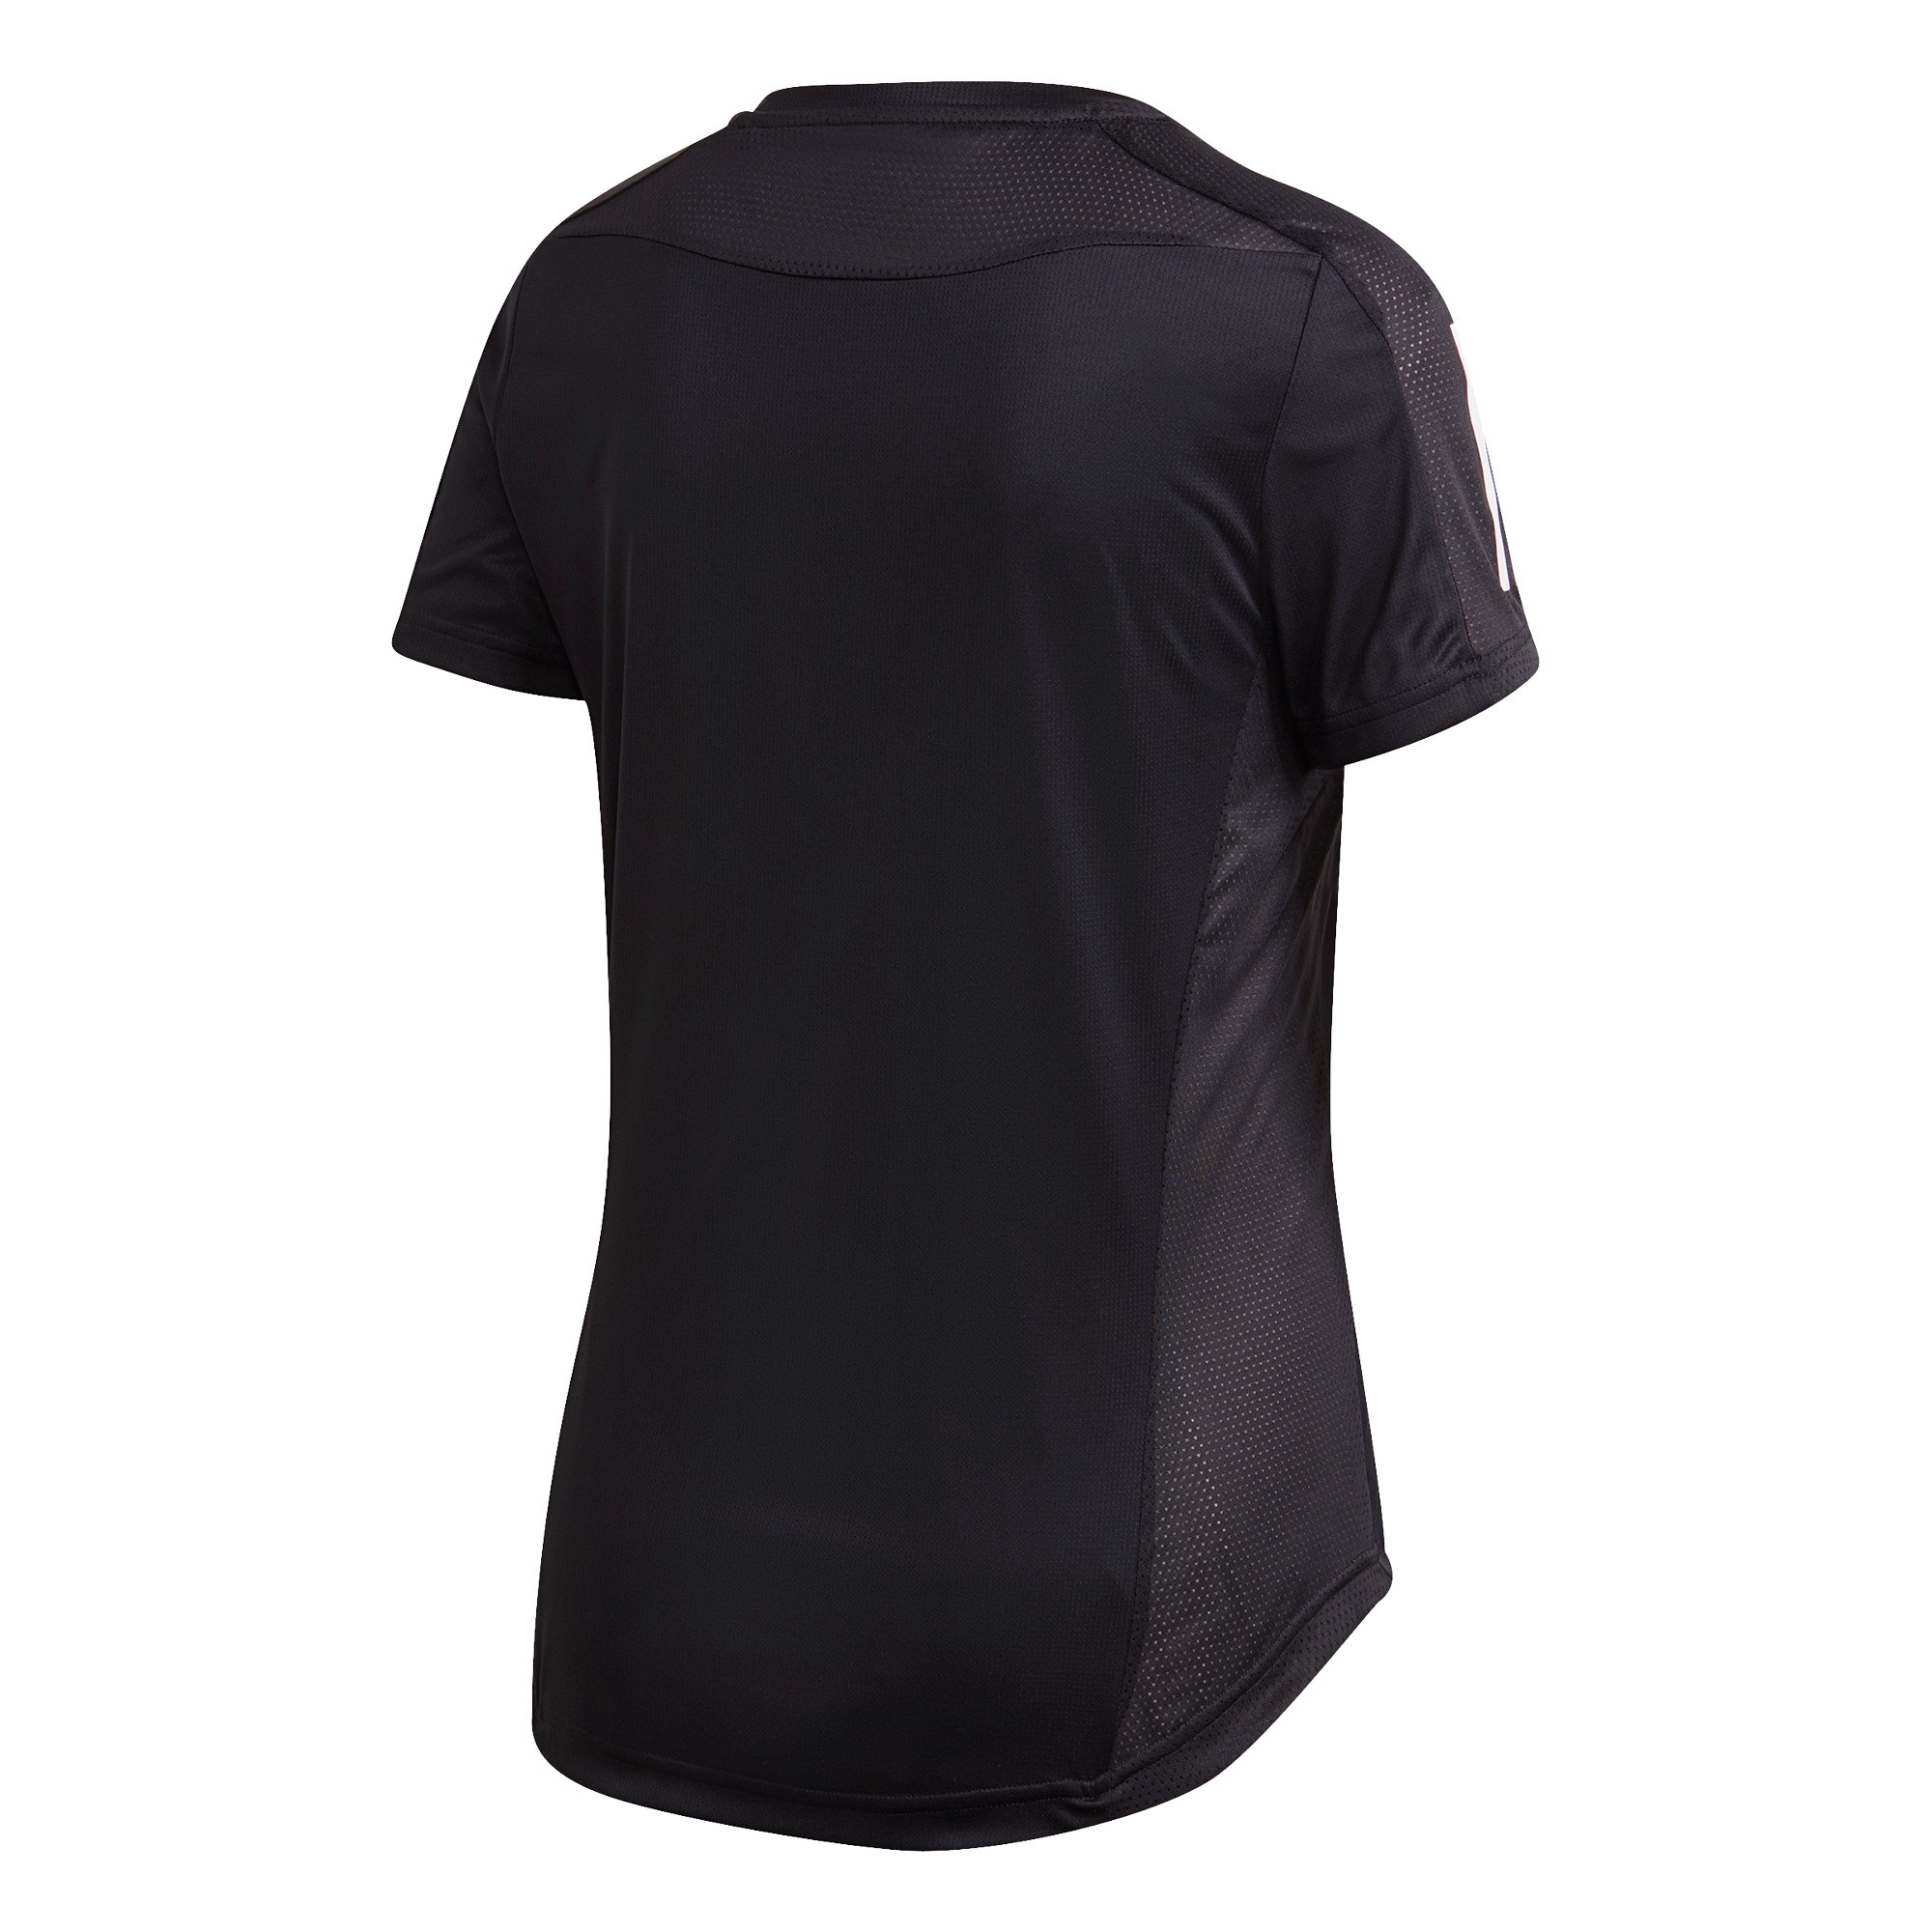 T-shirt Own The Run, Nero, large image number 2